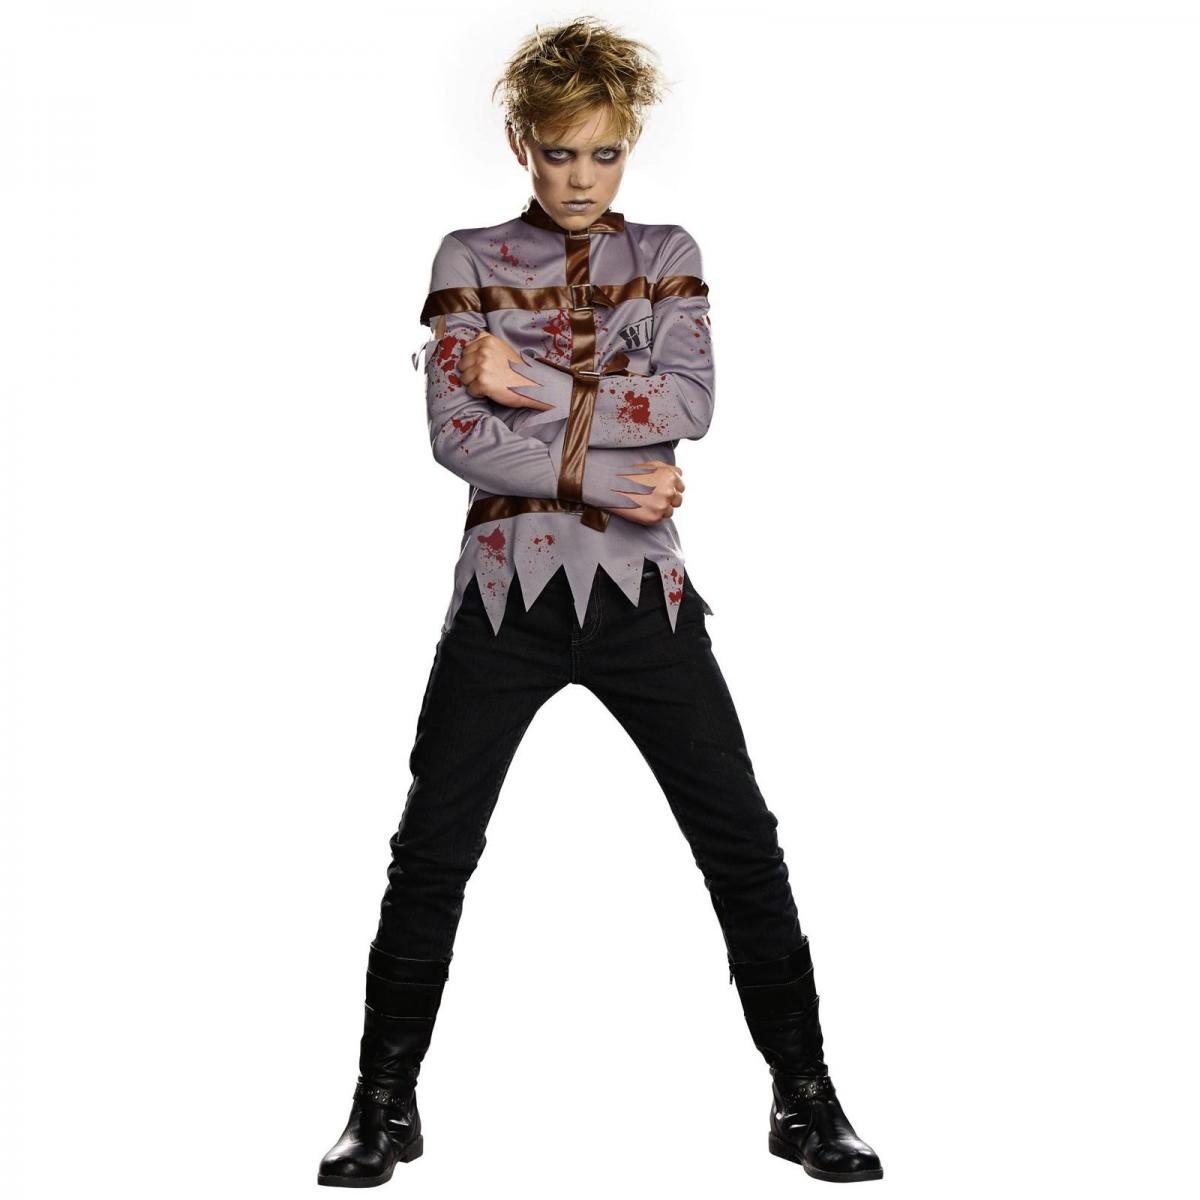 """""""Gone Mental"""" Boys Costume at Costume Express"""